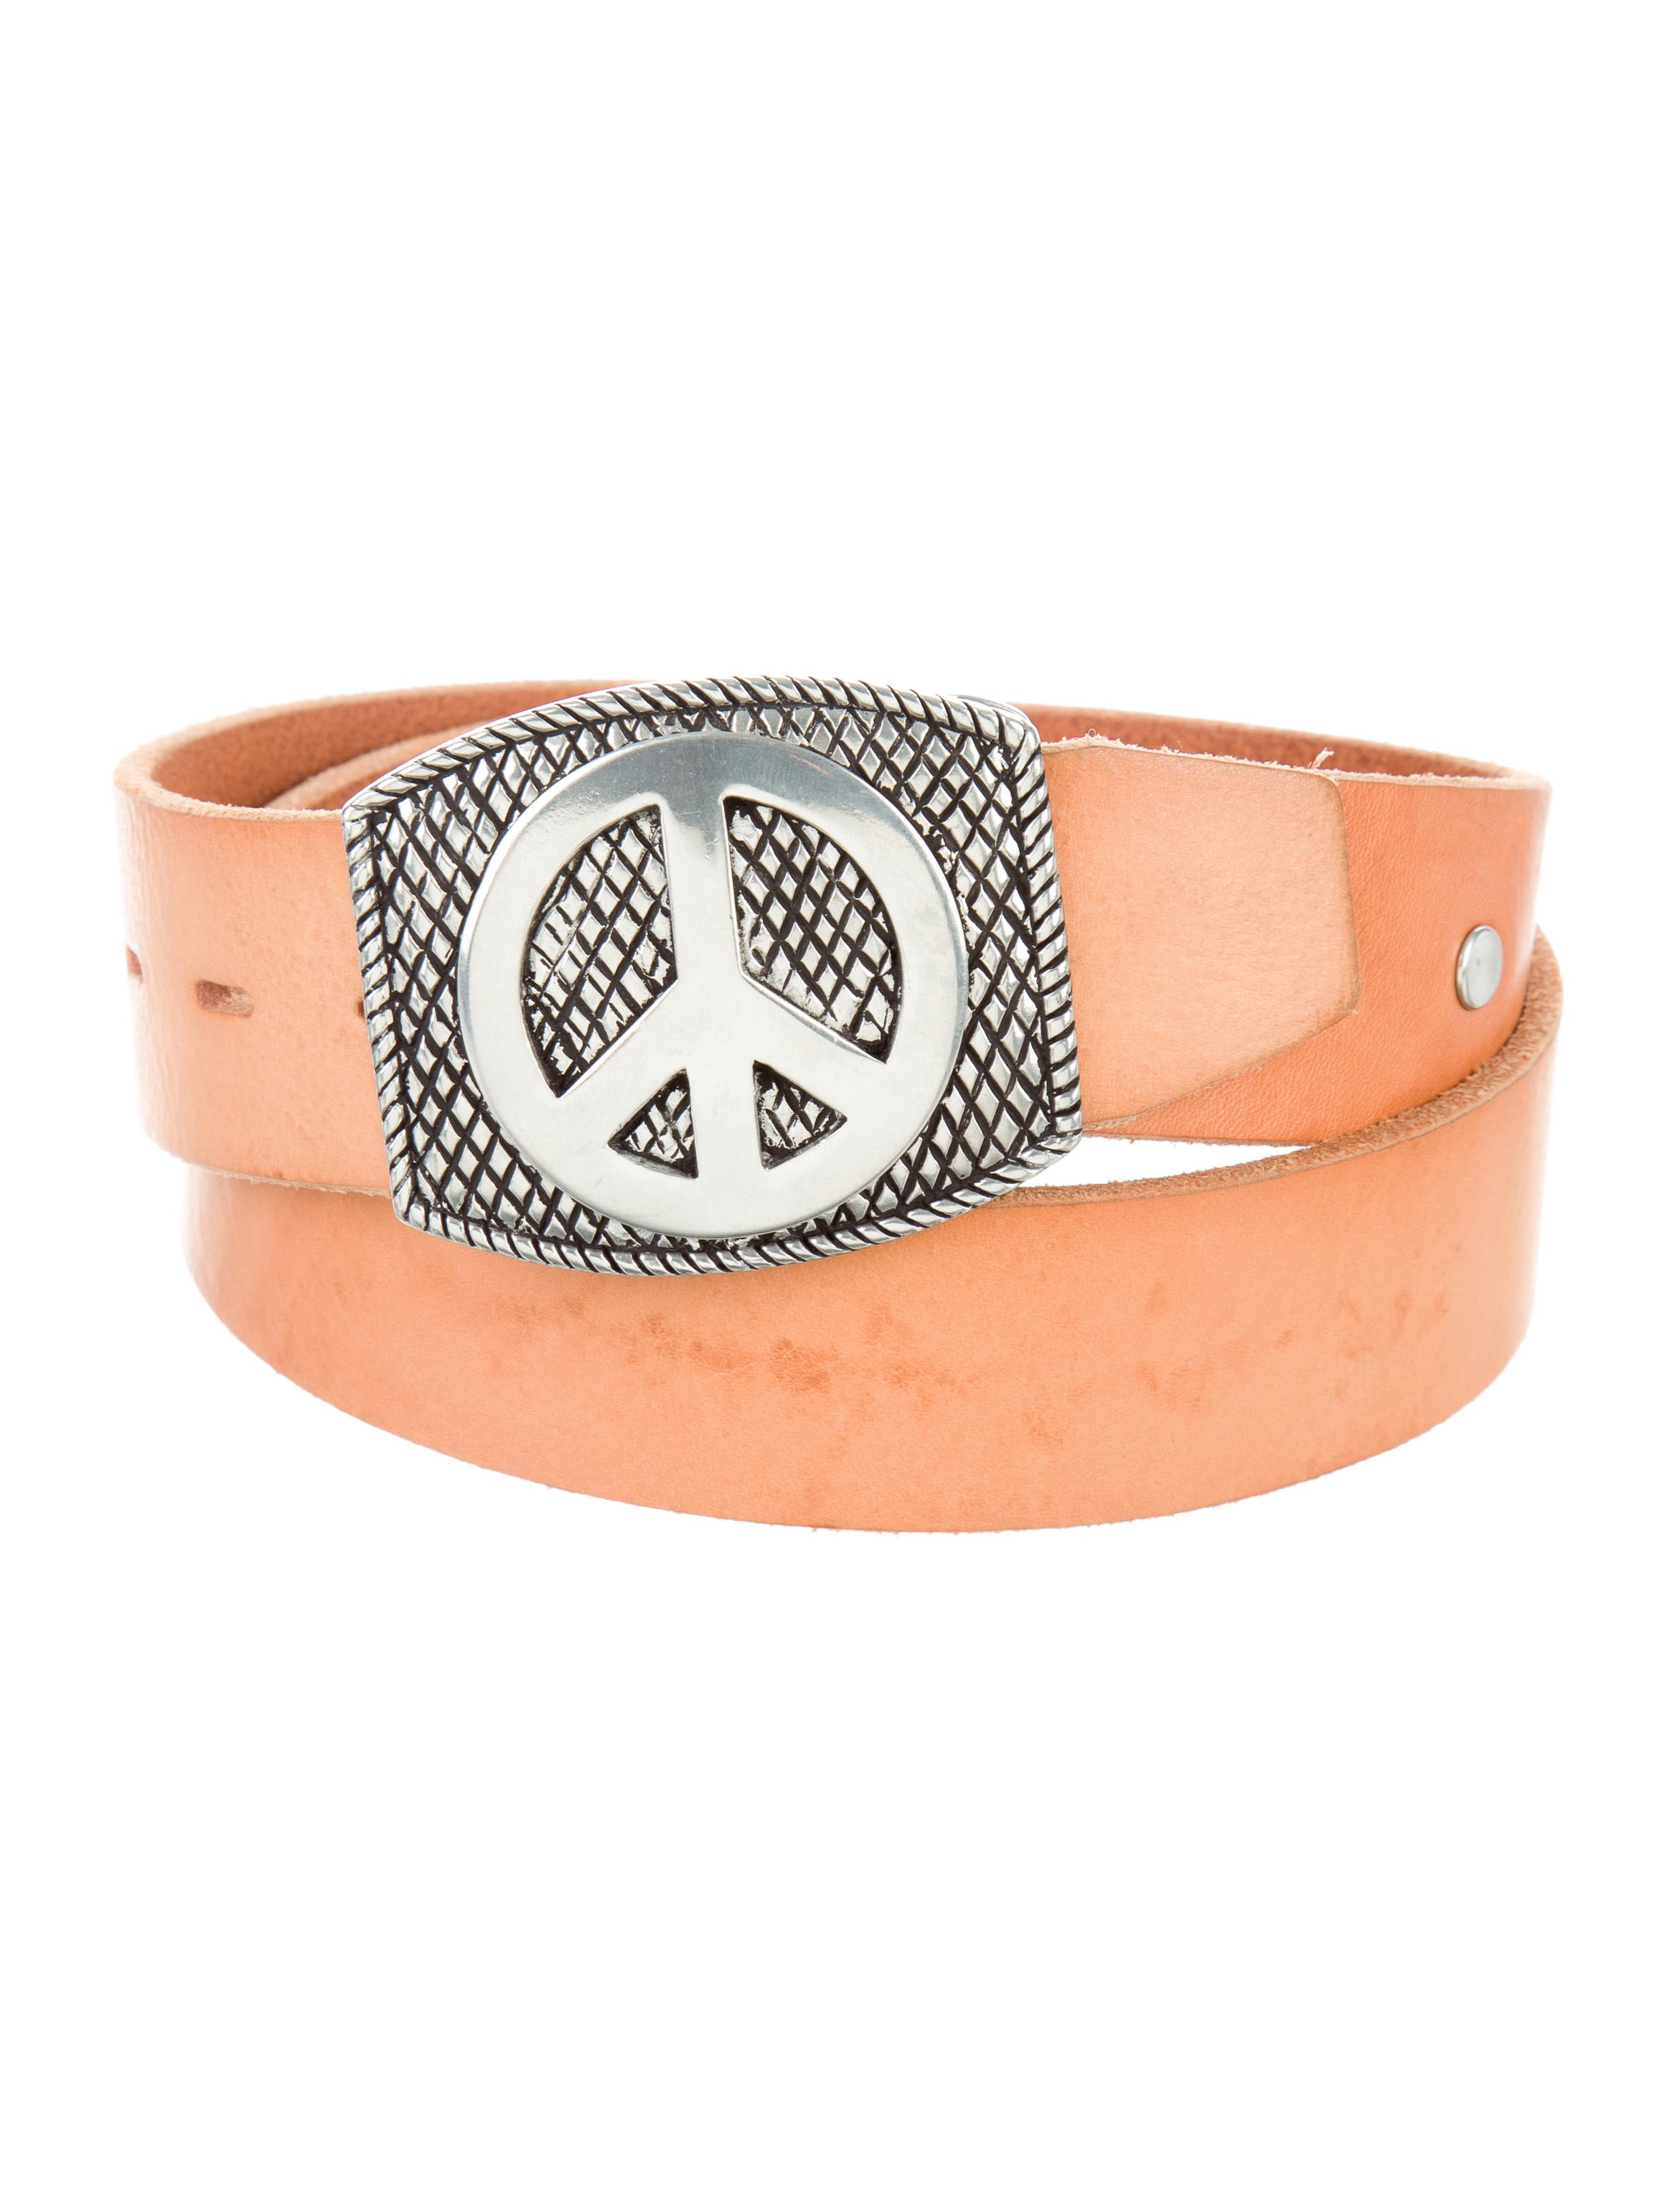 bracelet peace lane sign scl clover emojis emoji stoney pin